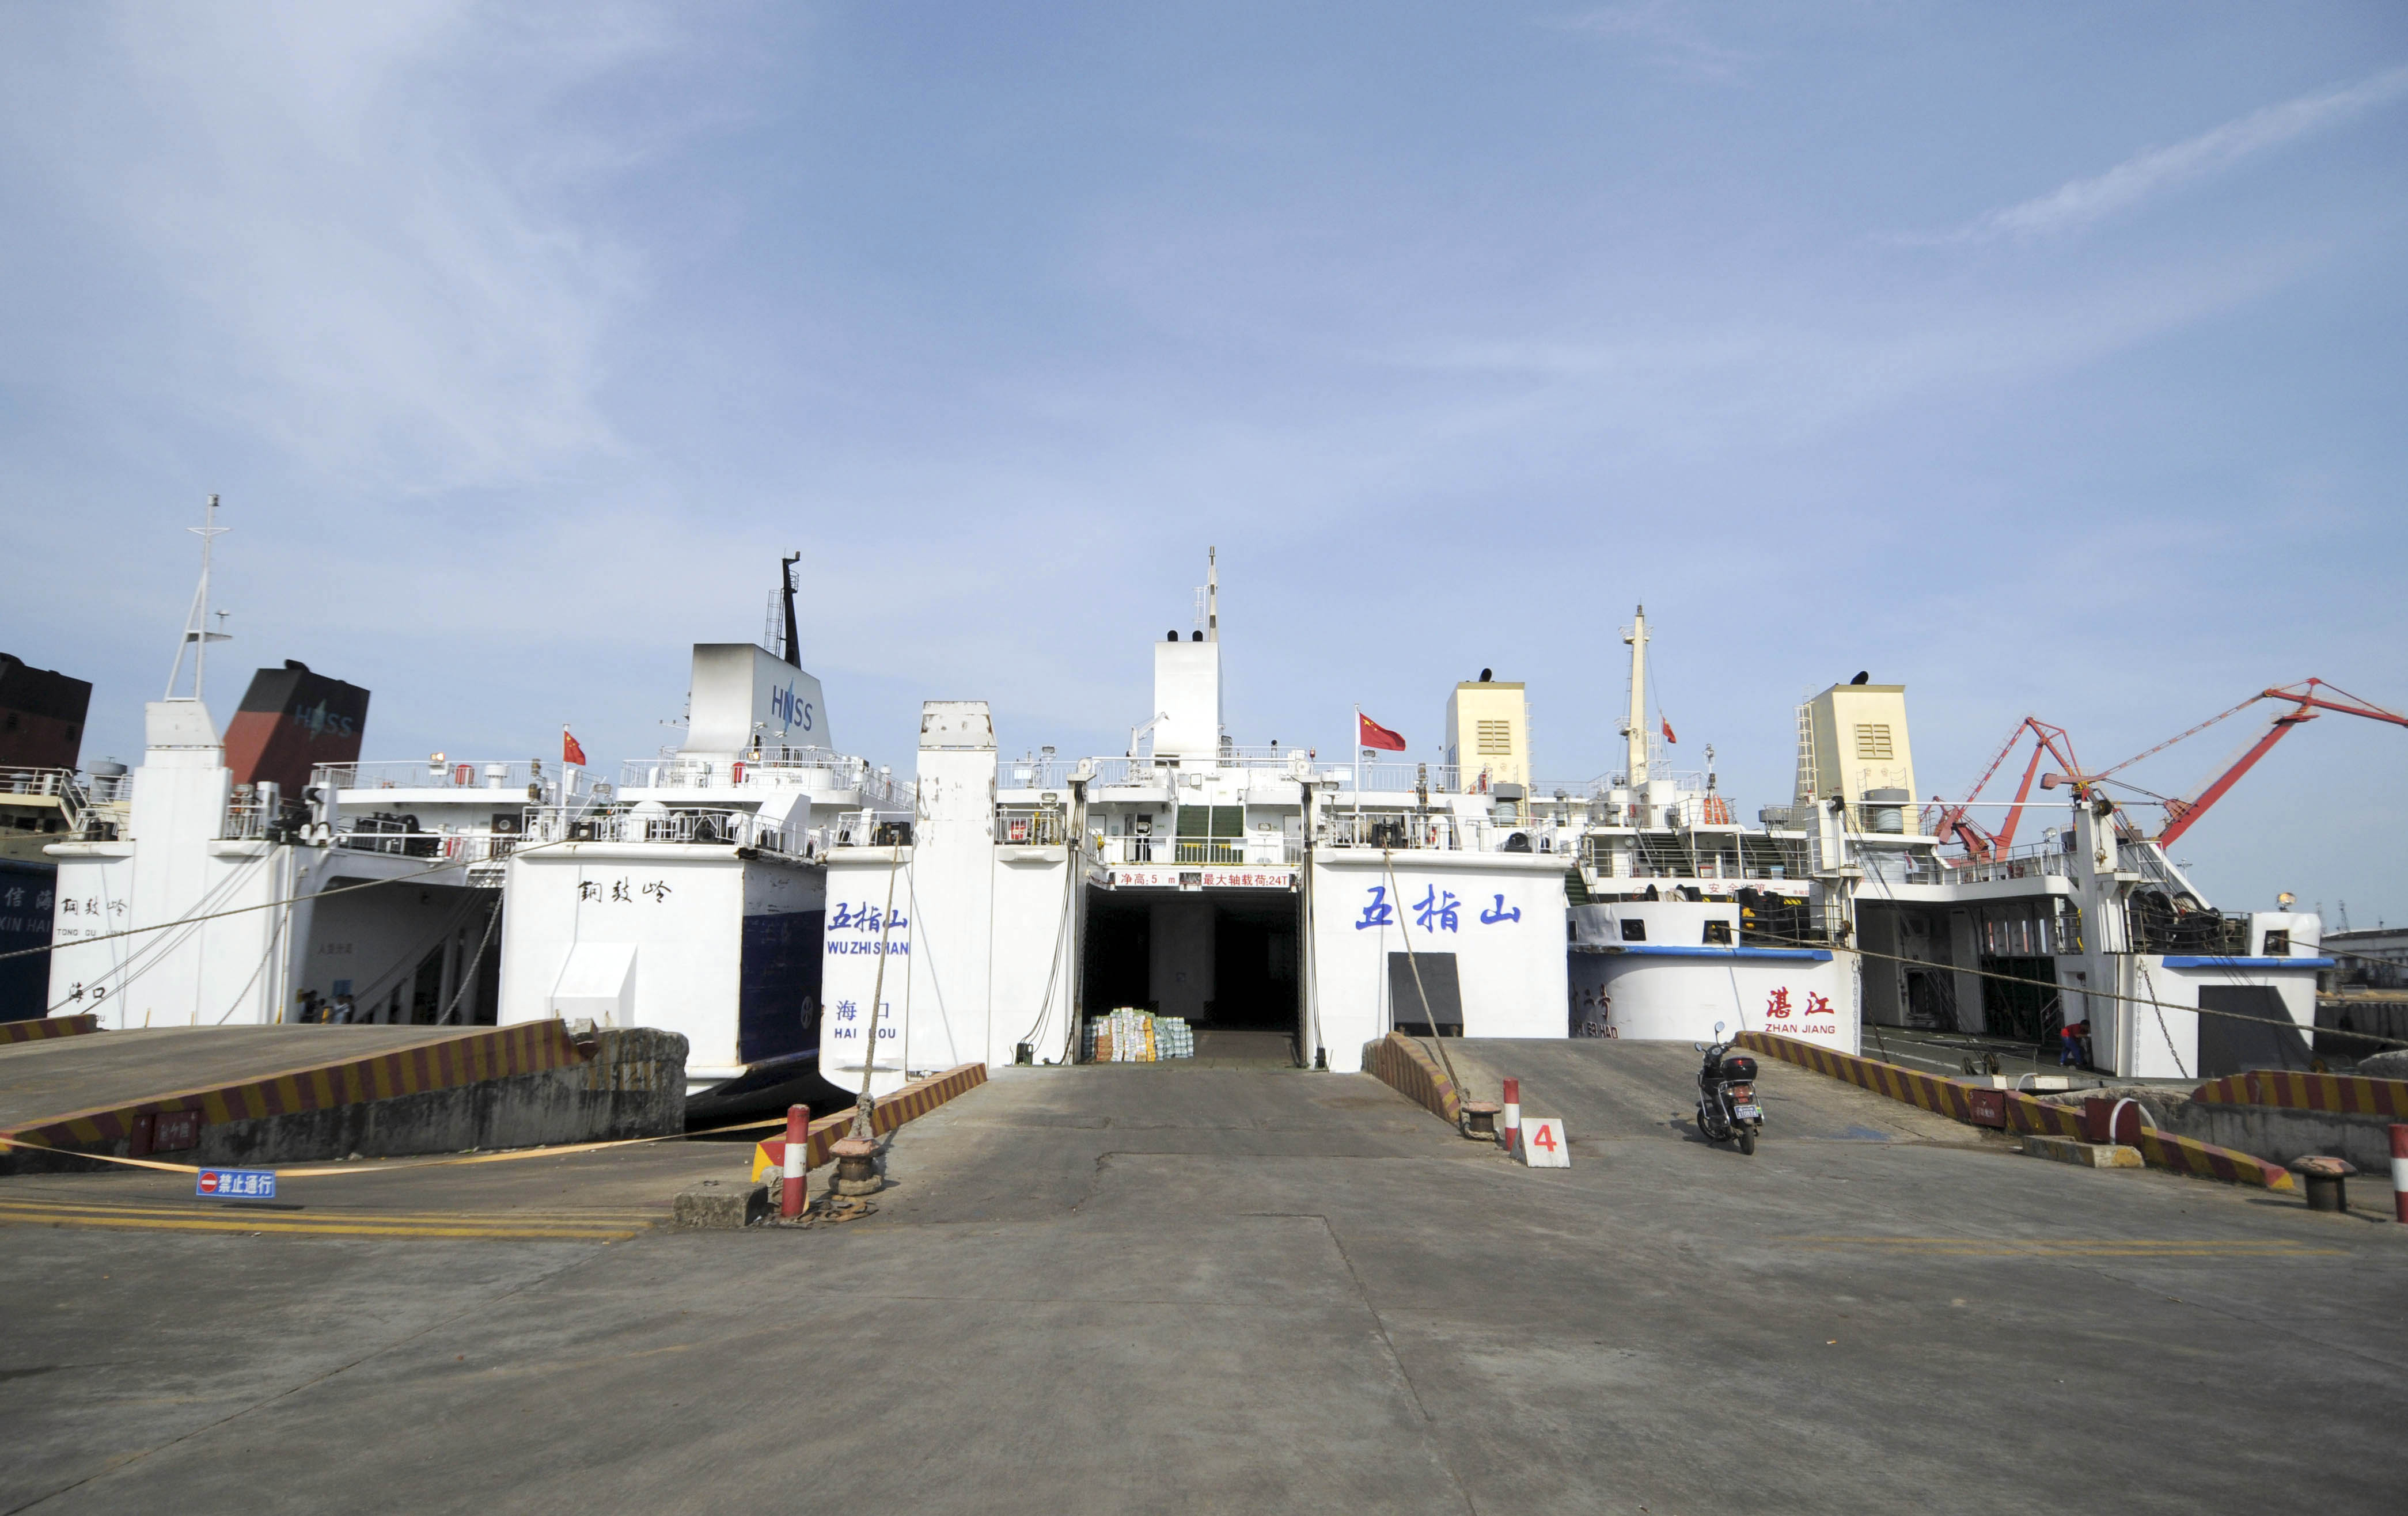 Chinese passenger ships Wuzhishan, center, and Tongguling, left, seen at Haikou, capital of south China's Hainan province, before their departure on May 18, 2014